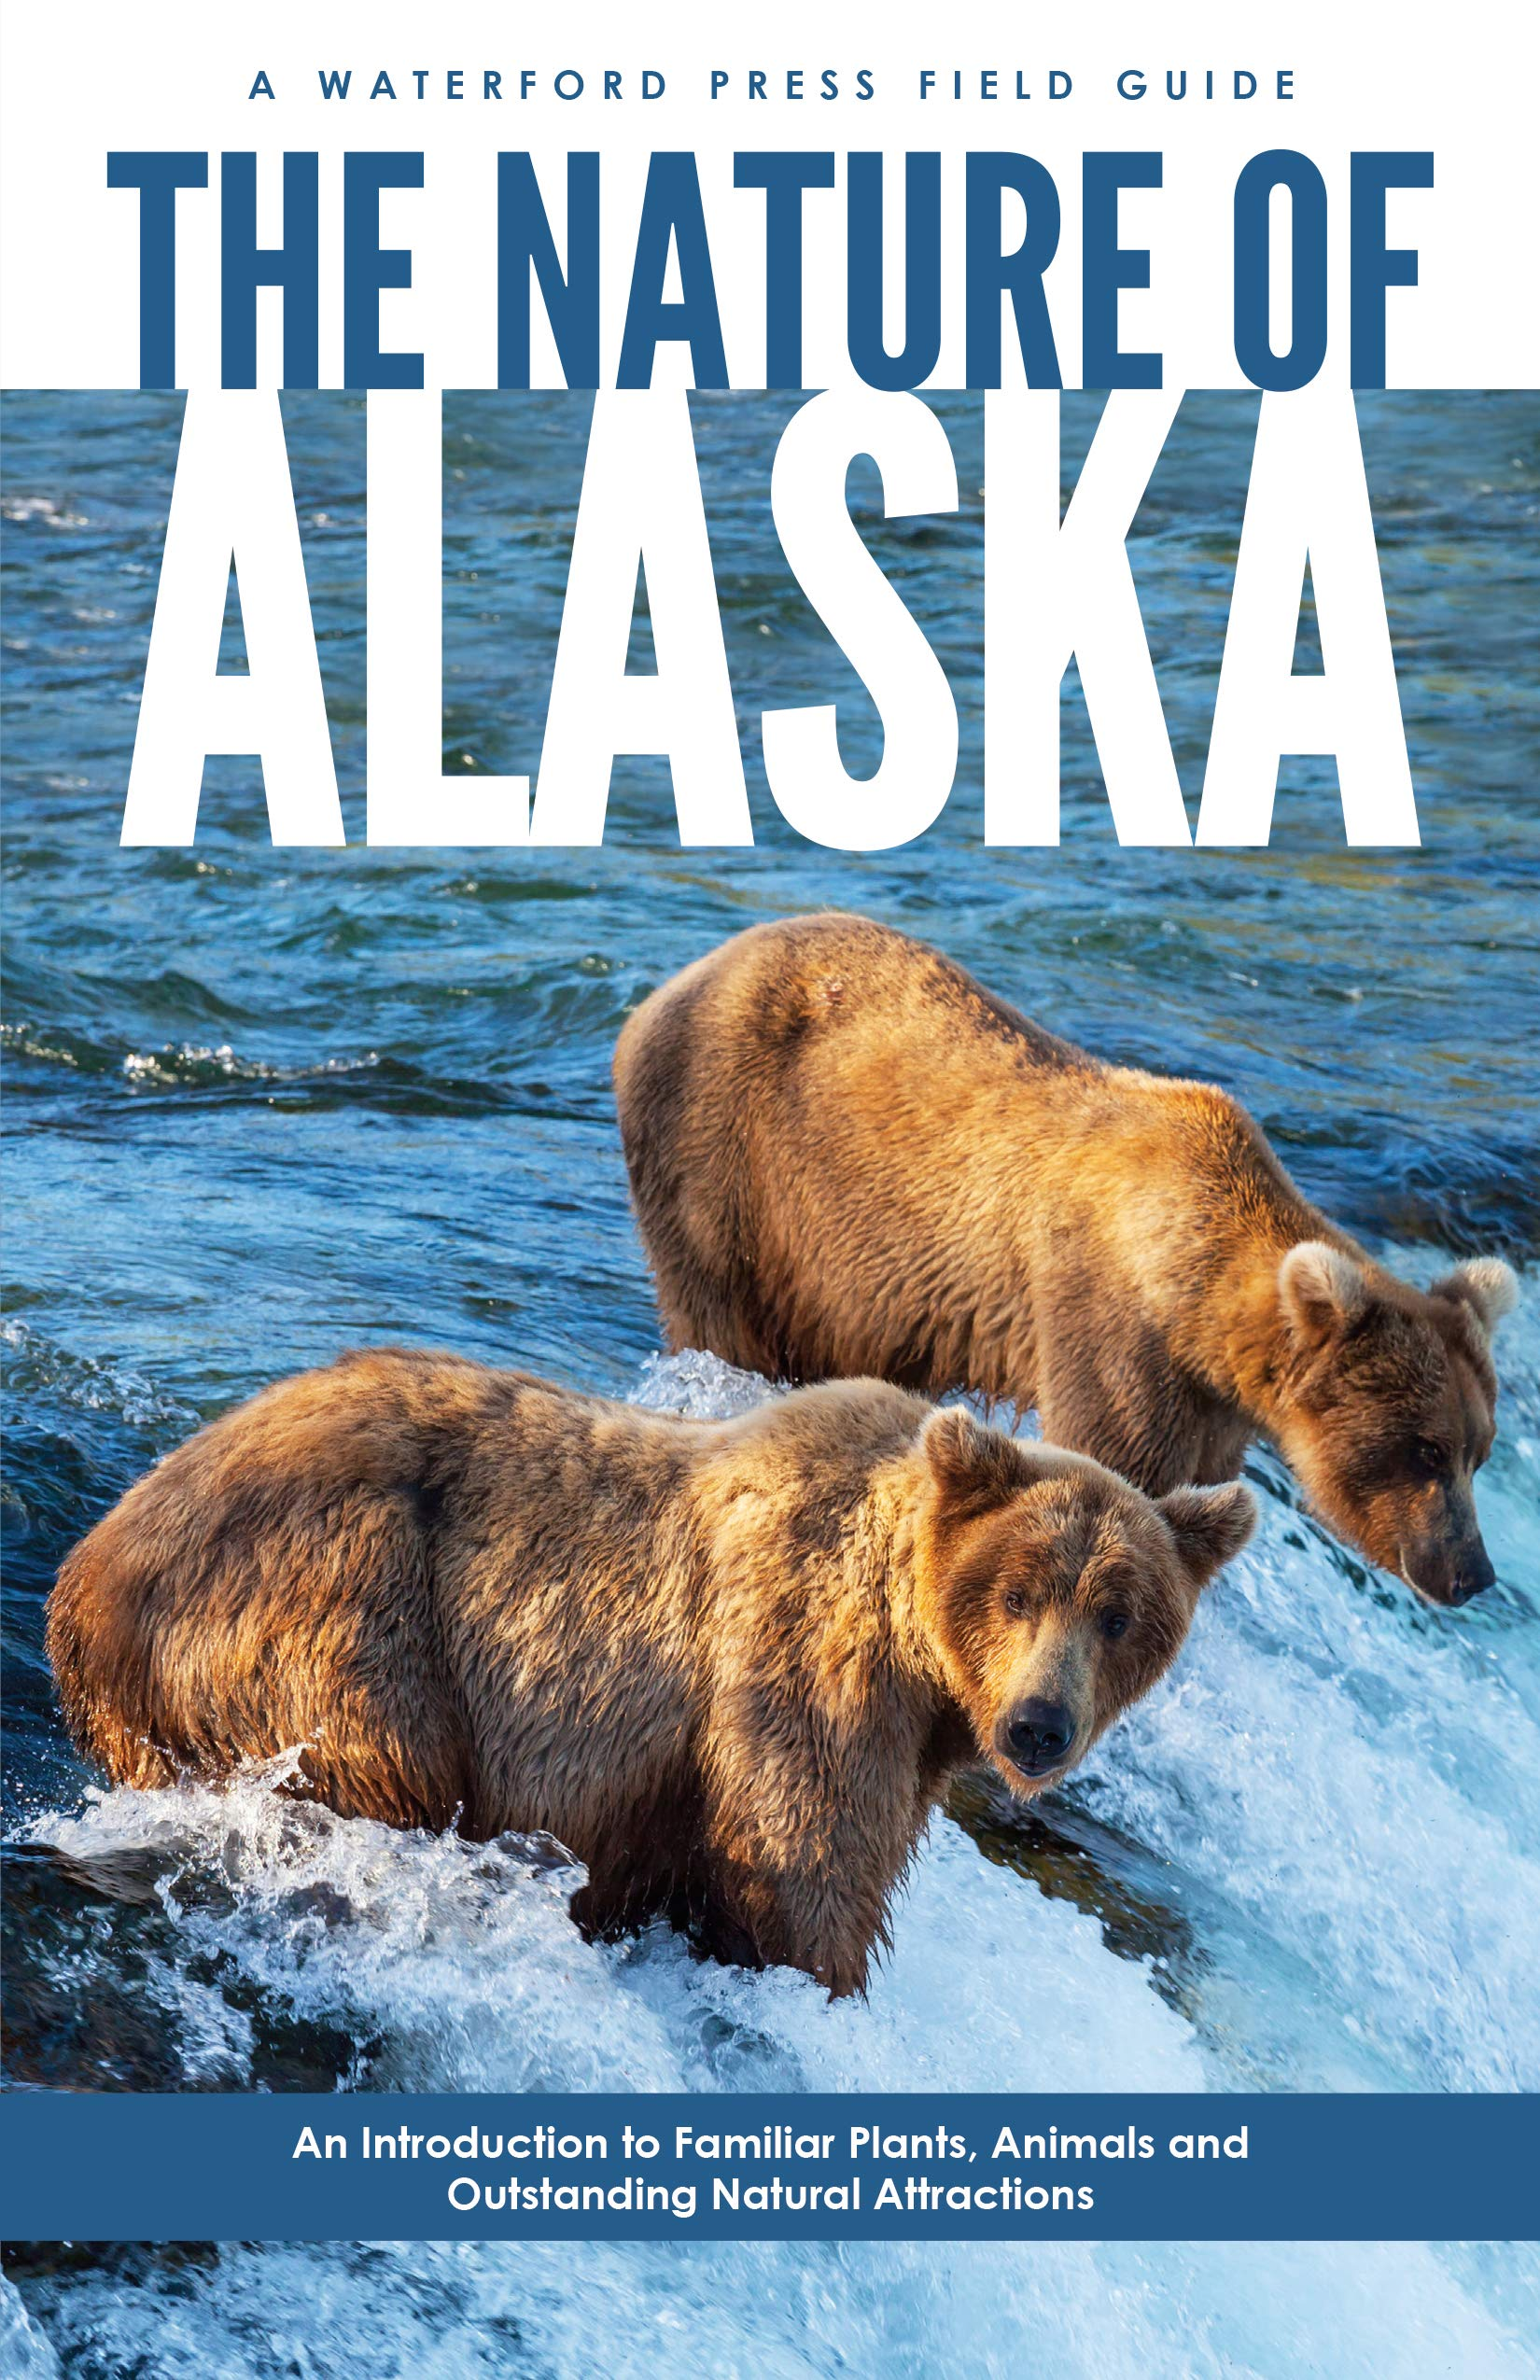 Download The Nature of Alaska: An Introduction to Familiar Plants, Animals & Outstanding Natural Attractions (Waterford Press Field Guides) pdf epub